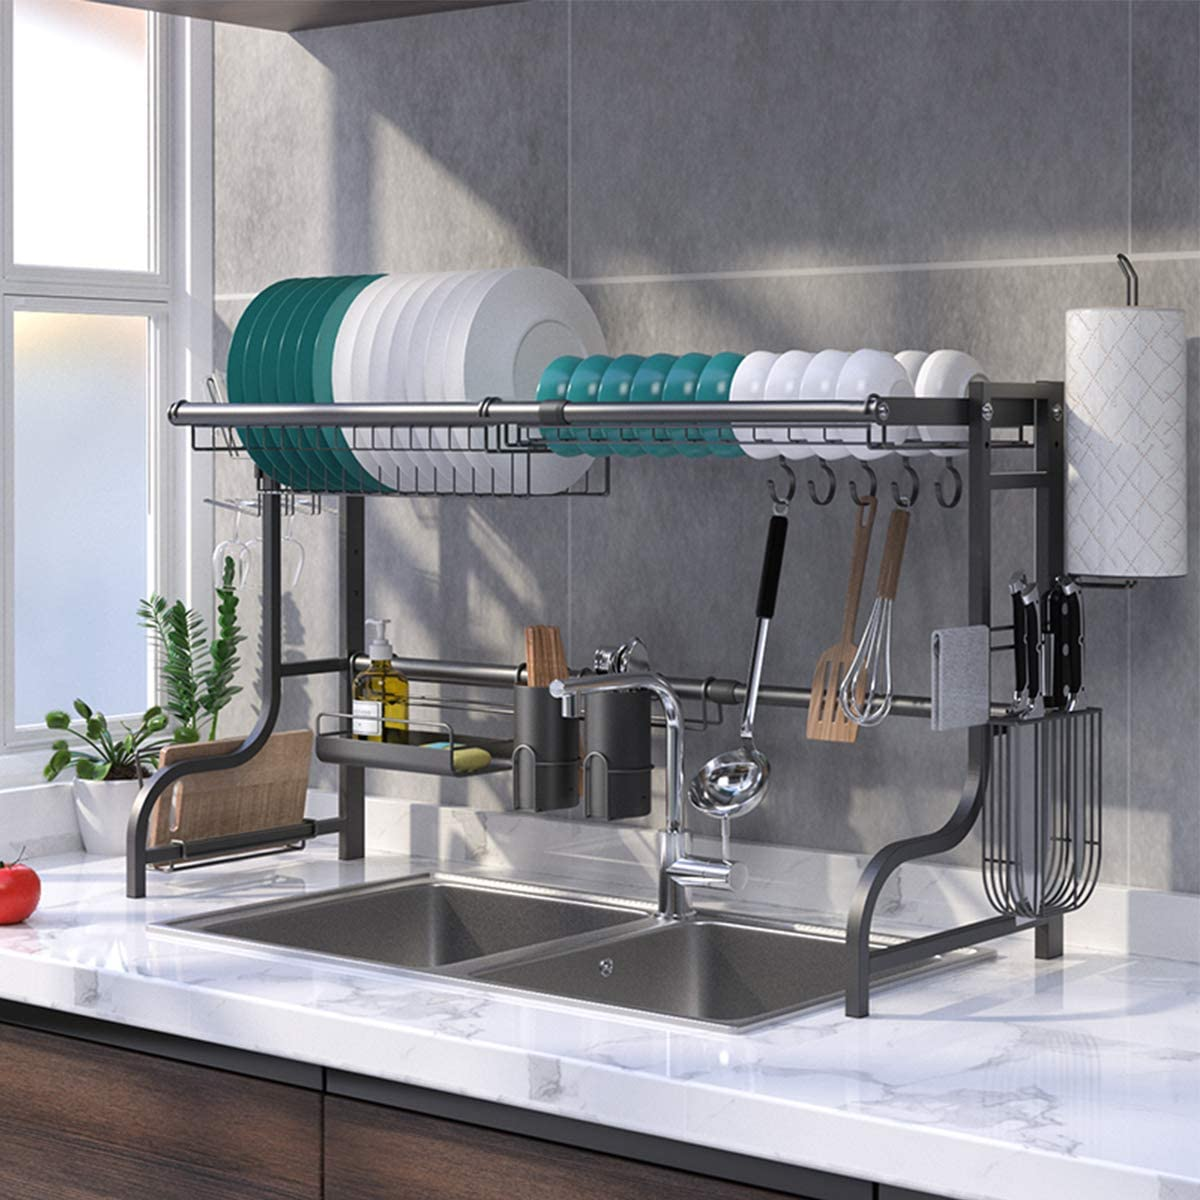 BENOSS Expandable Dish Drying Rack Stand Over Sink, Adjustable Dish Dryer for Kitchen, Multi-function Storage Organizer Shelf with Knife Holder, Cutlery Holder and Drainboard (Black with cup holder)